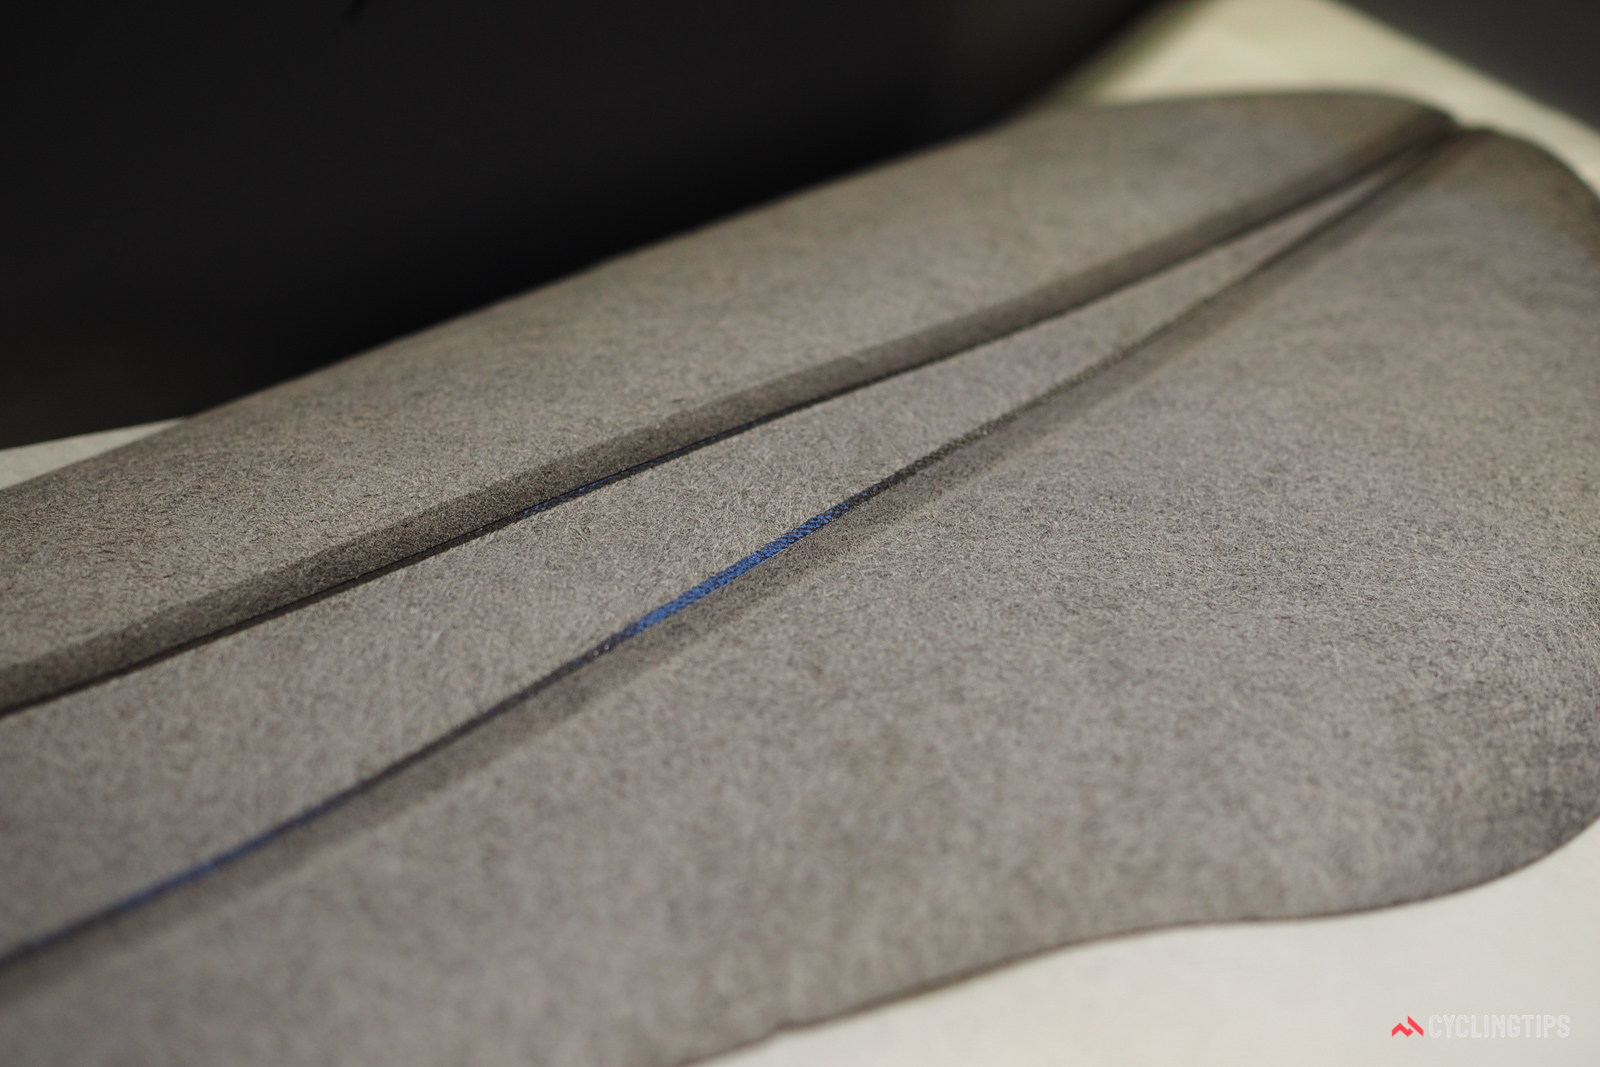 Bonded seams are first shaved down so as to maintain a constant thickness in the finished part.